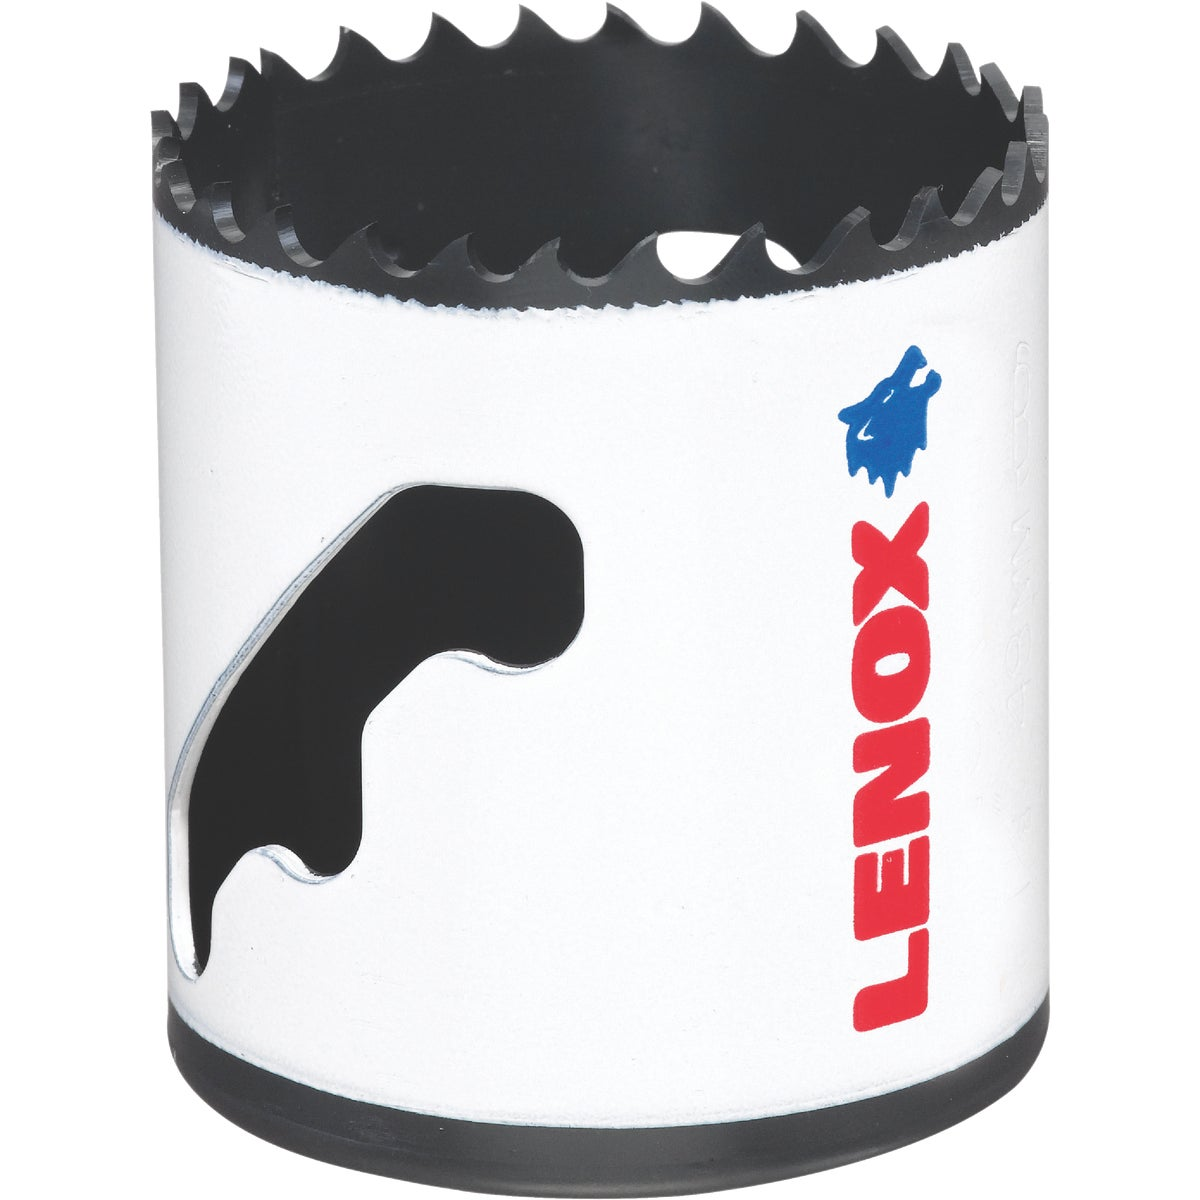 "1-7/8"" HOLE SAW - 1771968 by Lenox"